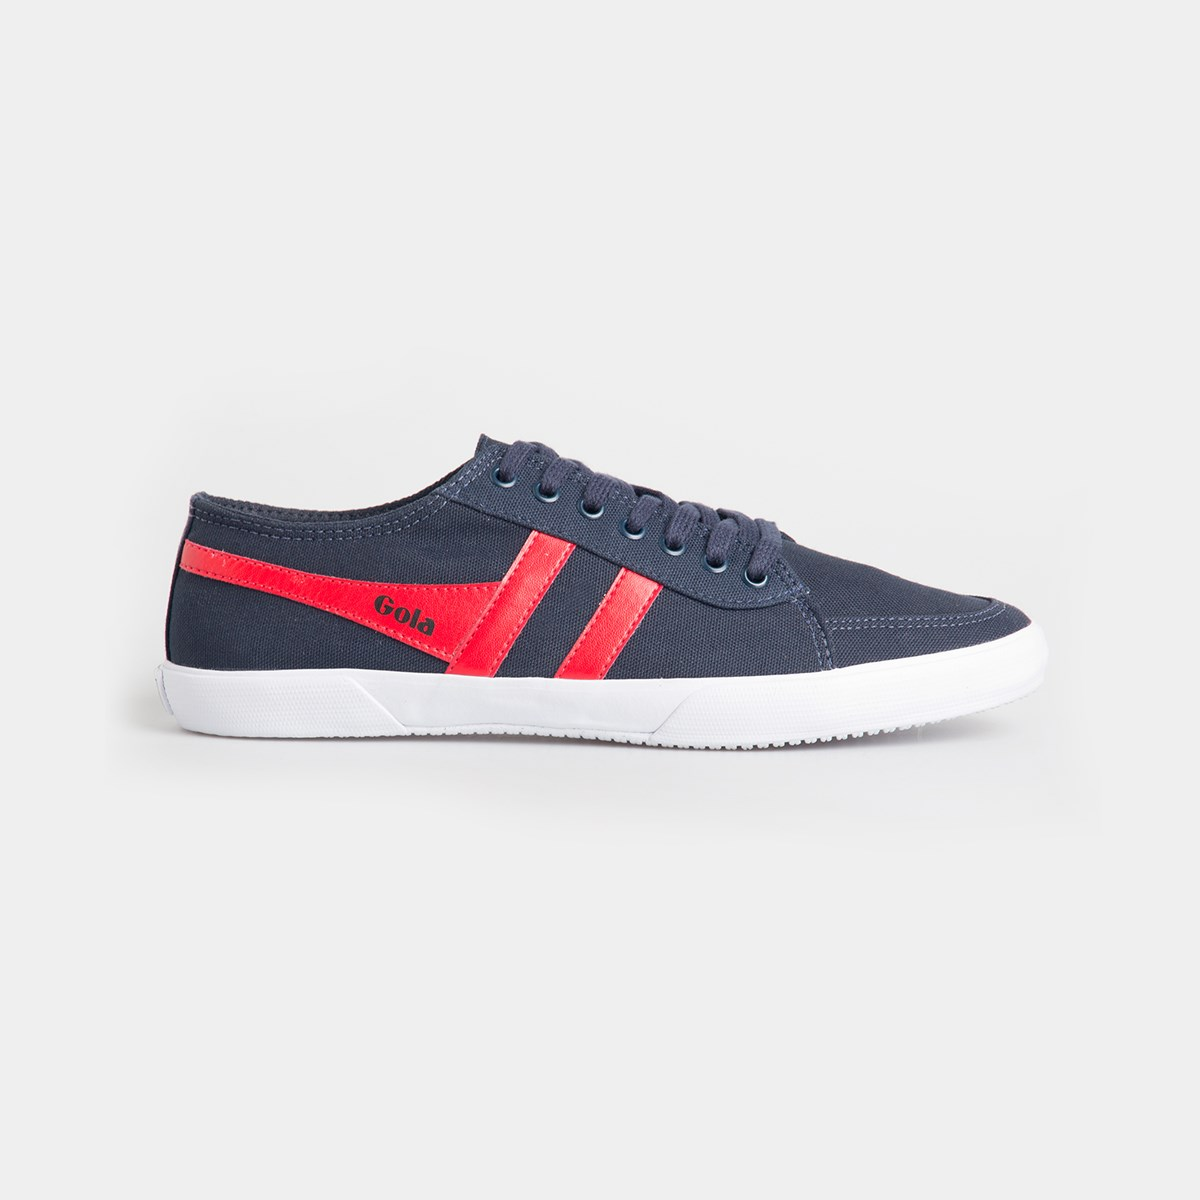 babf7c0b3f753 Gola South Super Quarter Canvas